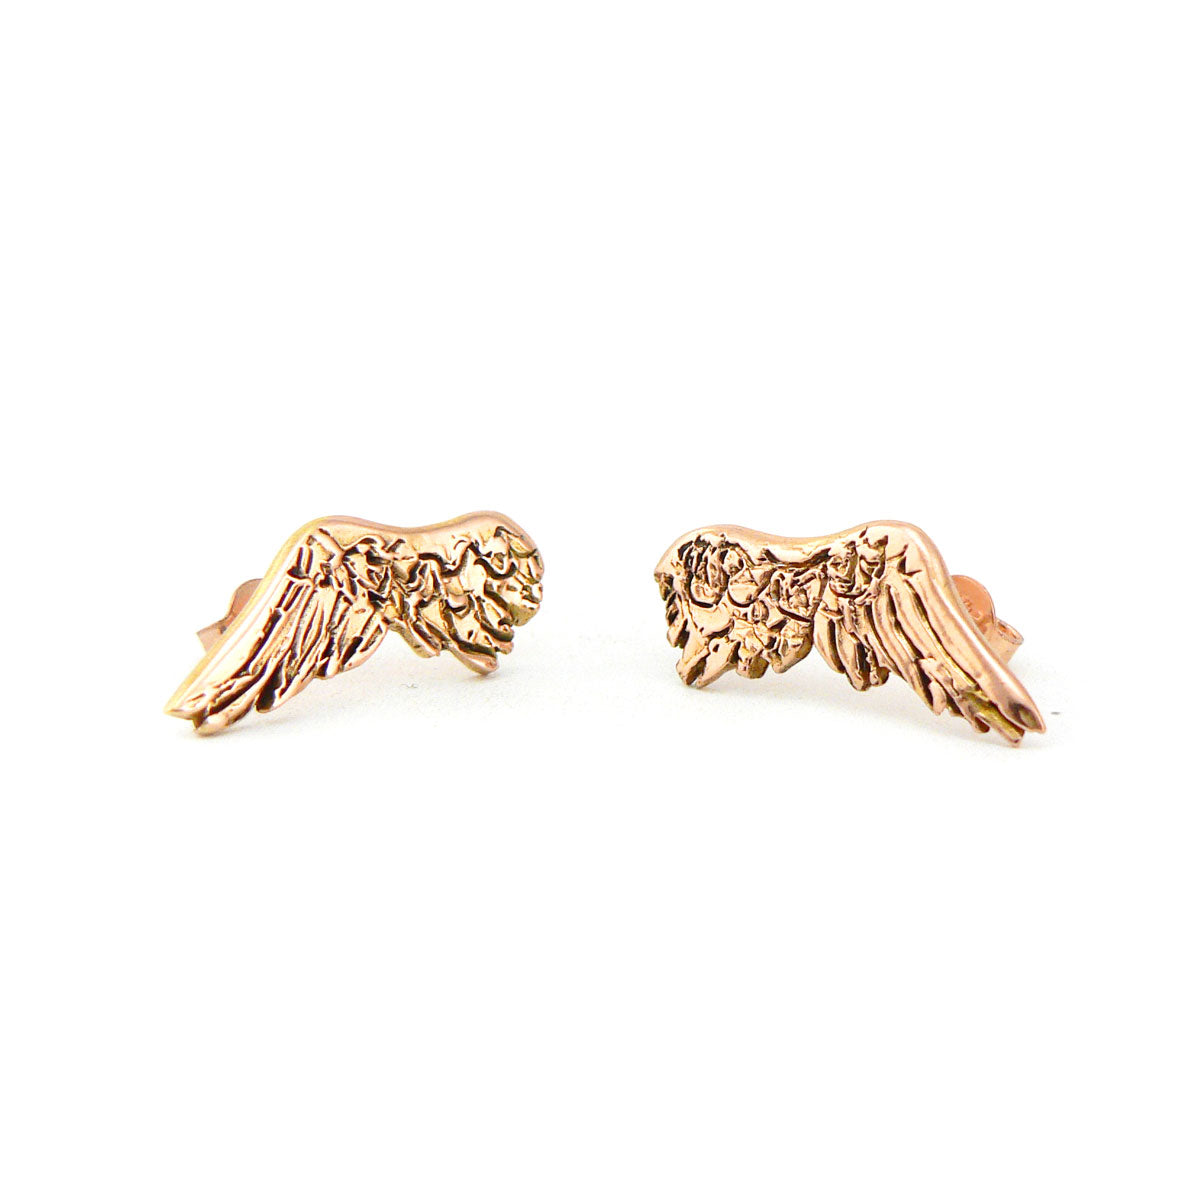 wing earrings in 9ct rose gold, bespoke custom handmade